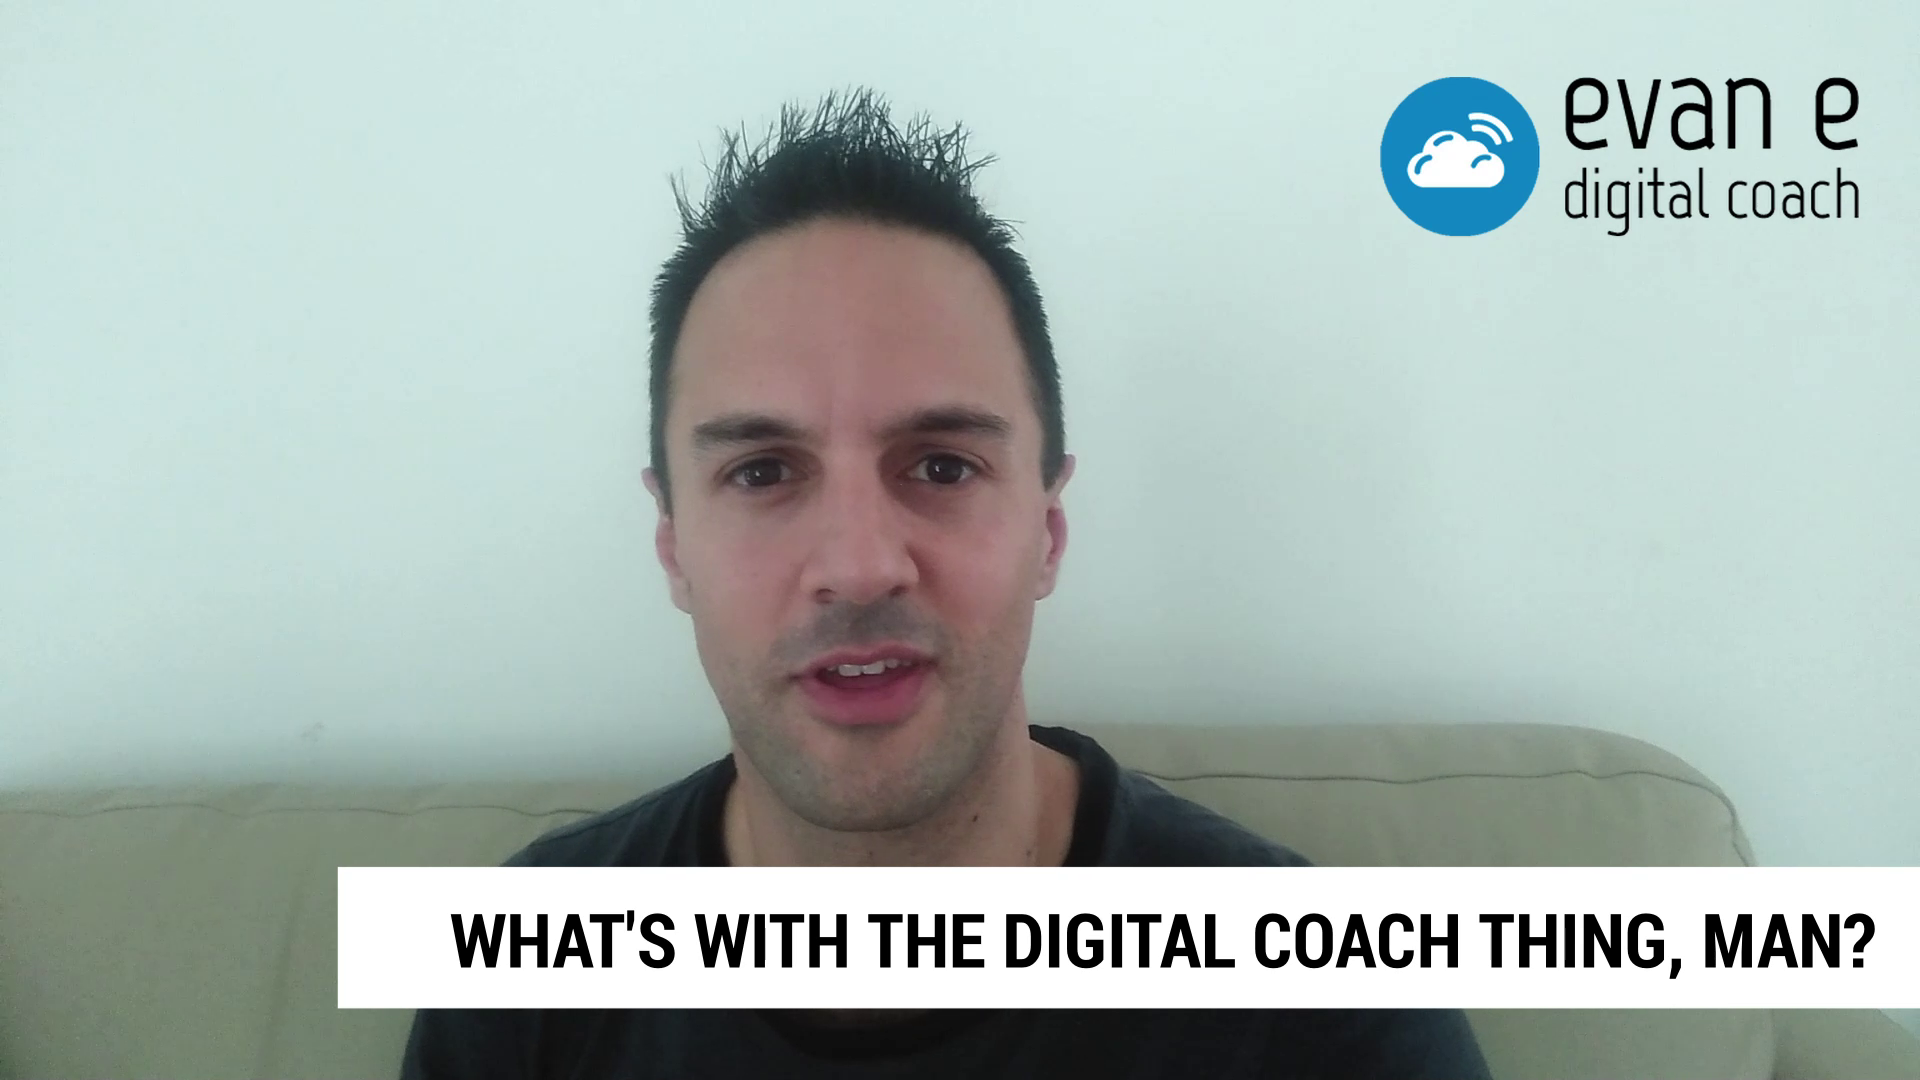 What's with the digital coach thing, man?